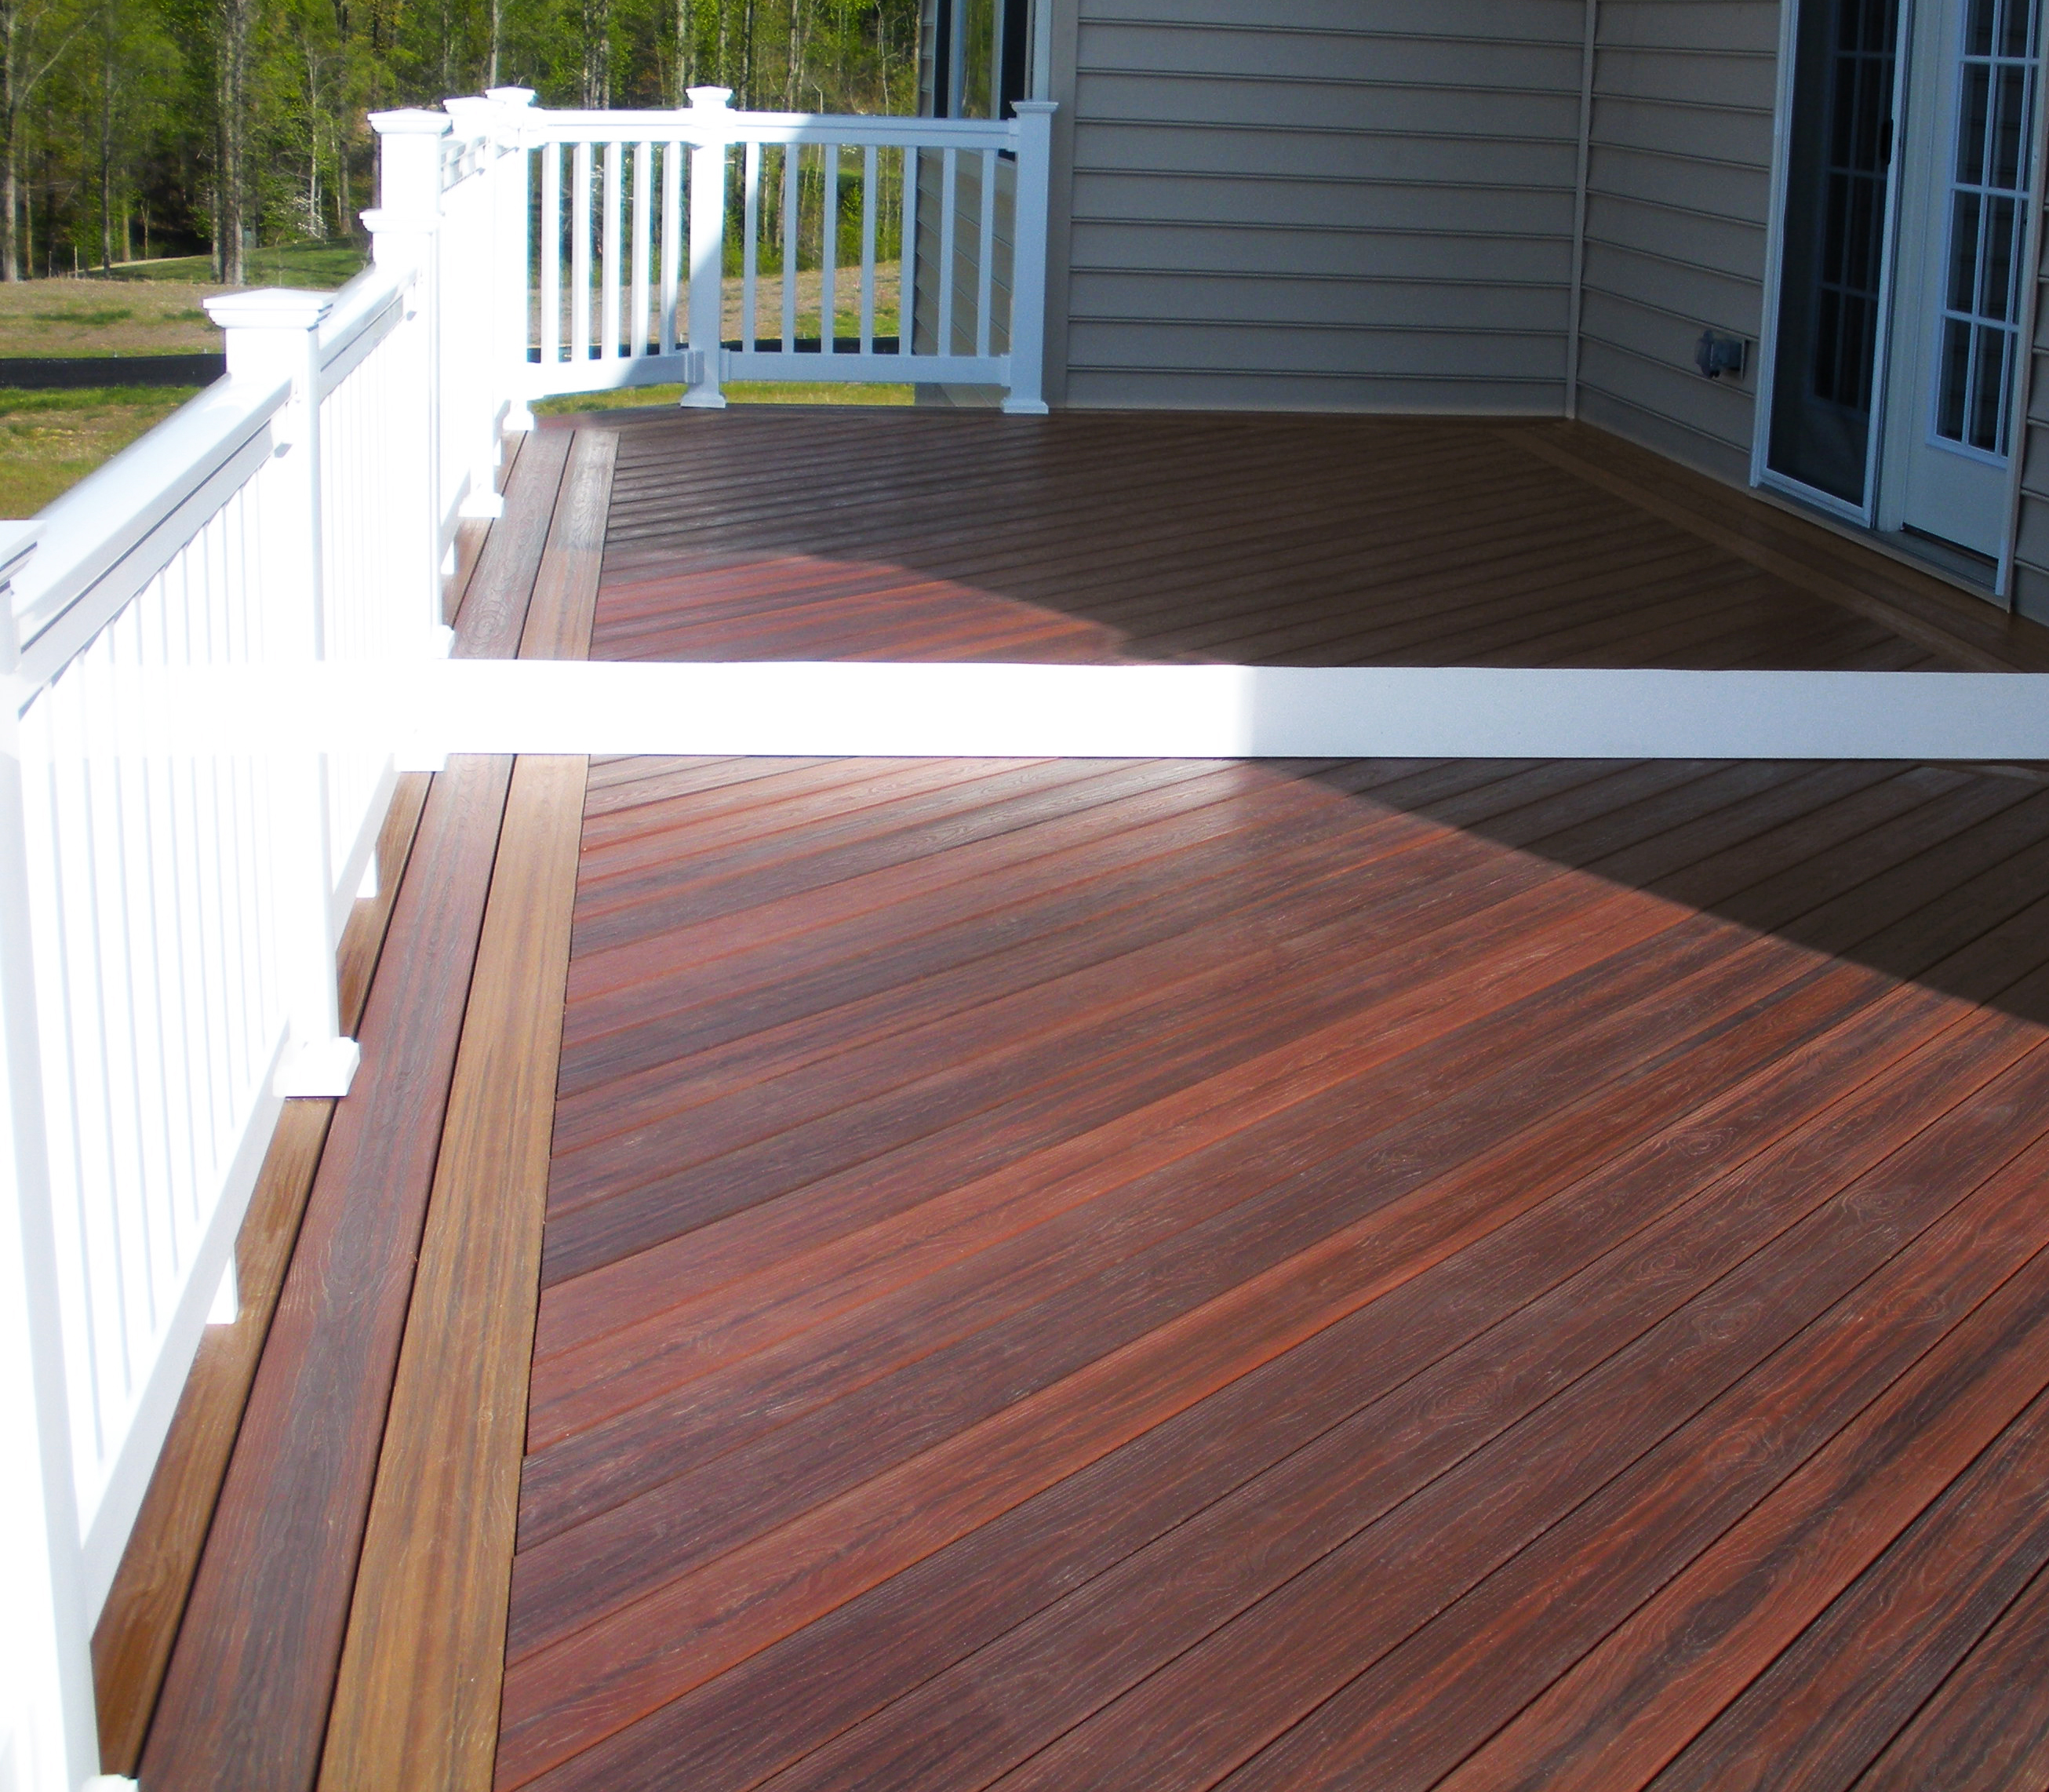 brown evergrain decking matched with white railing and wheat wall for patio decor ideas